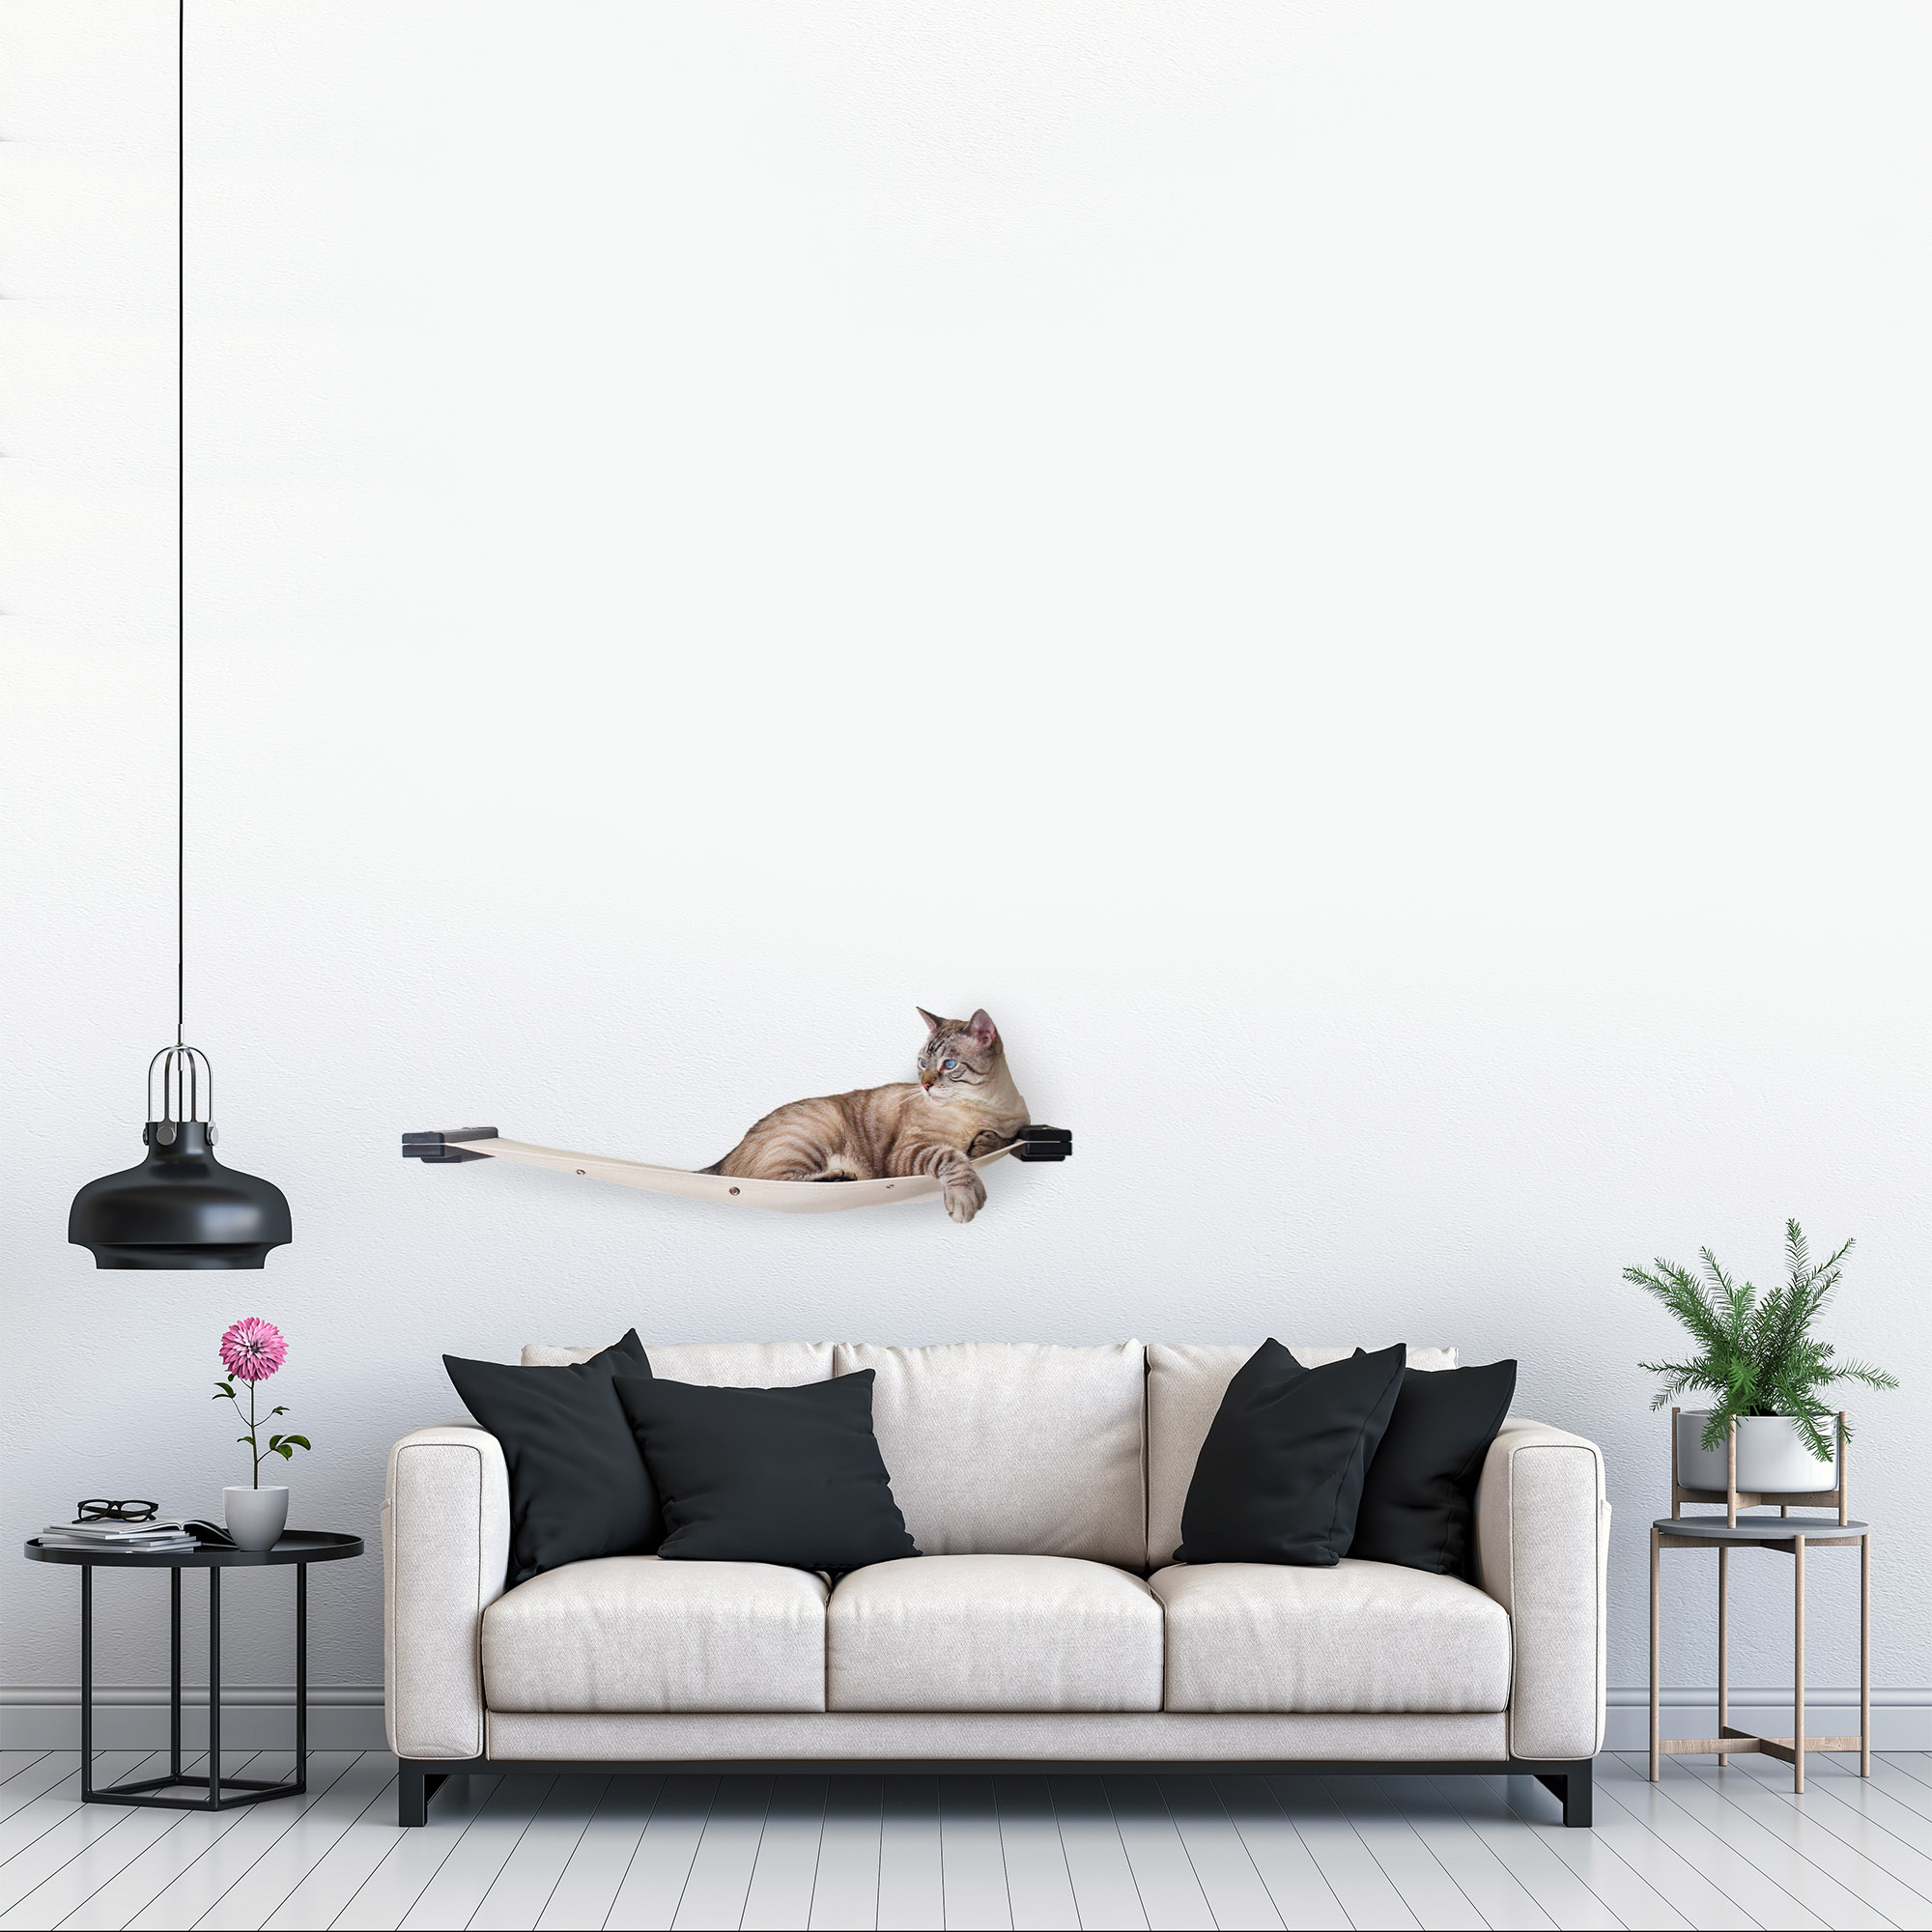 This photo displays our cat relaxing on the 32-Inch Cat Lounge in a living room setting. This image shows the Lounge in Onyx, a black stain, and has Natural fabric, a light tan color.